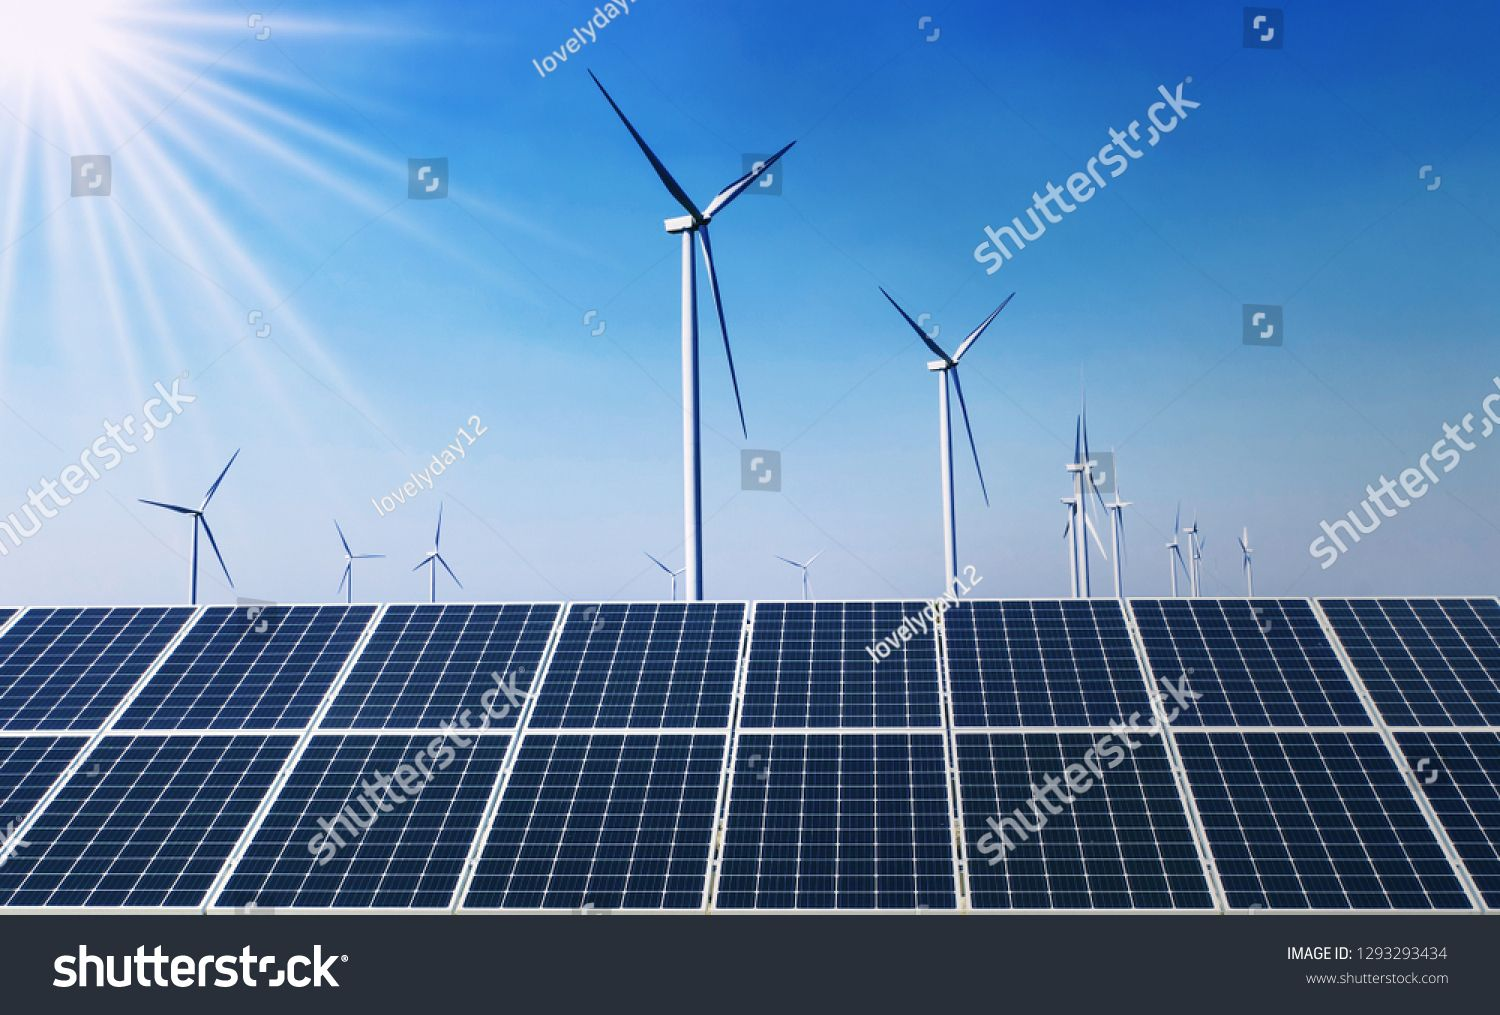 concept clean energy power in nature. solar panel with wind turbine and blue sky background #Ad , #Sponsored, #power#nature#solar#concept